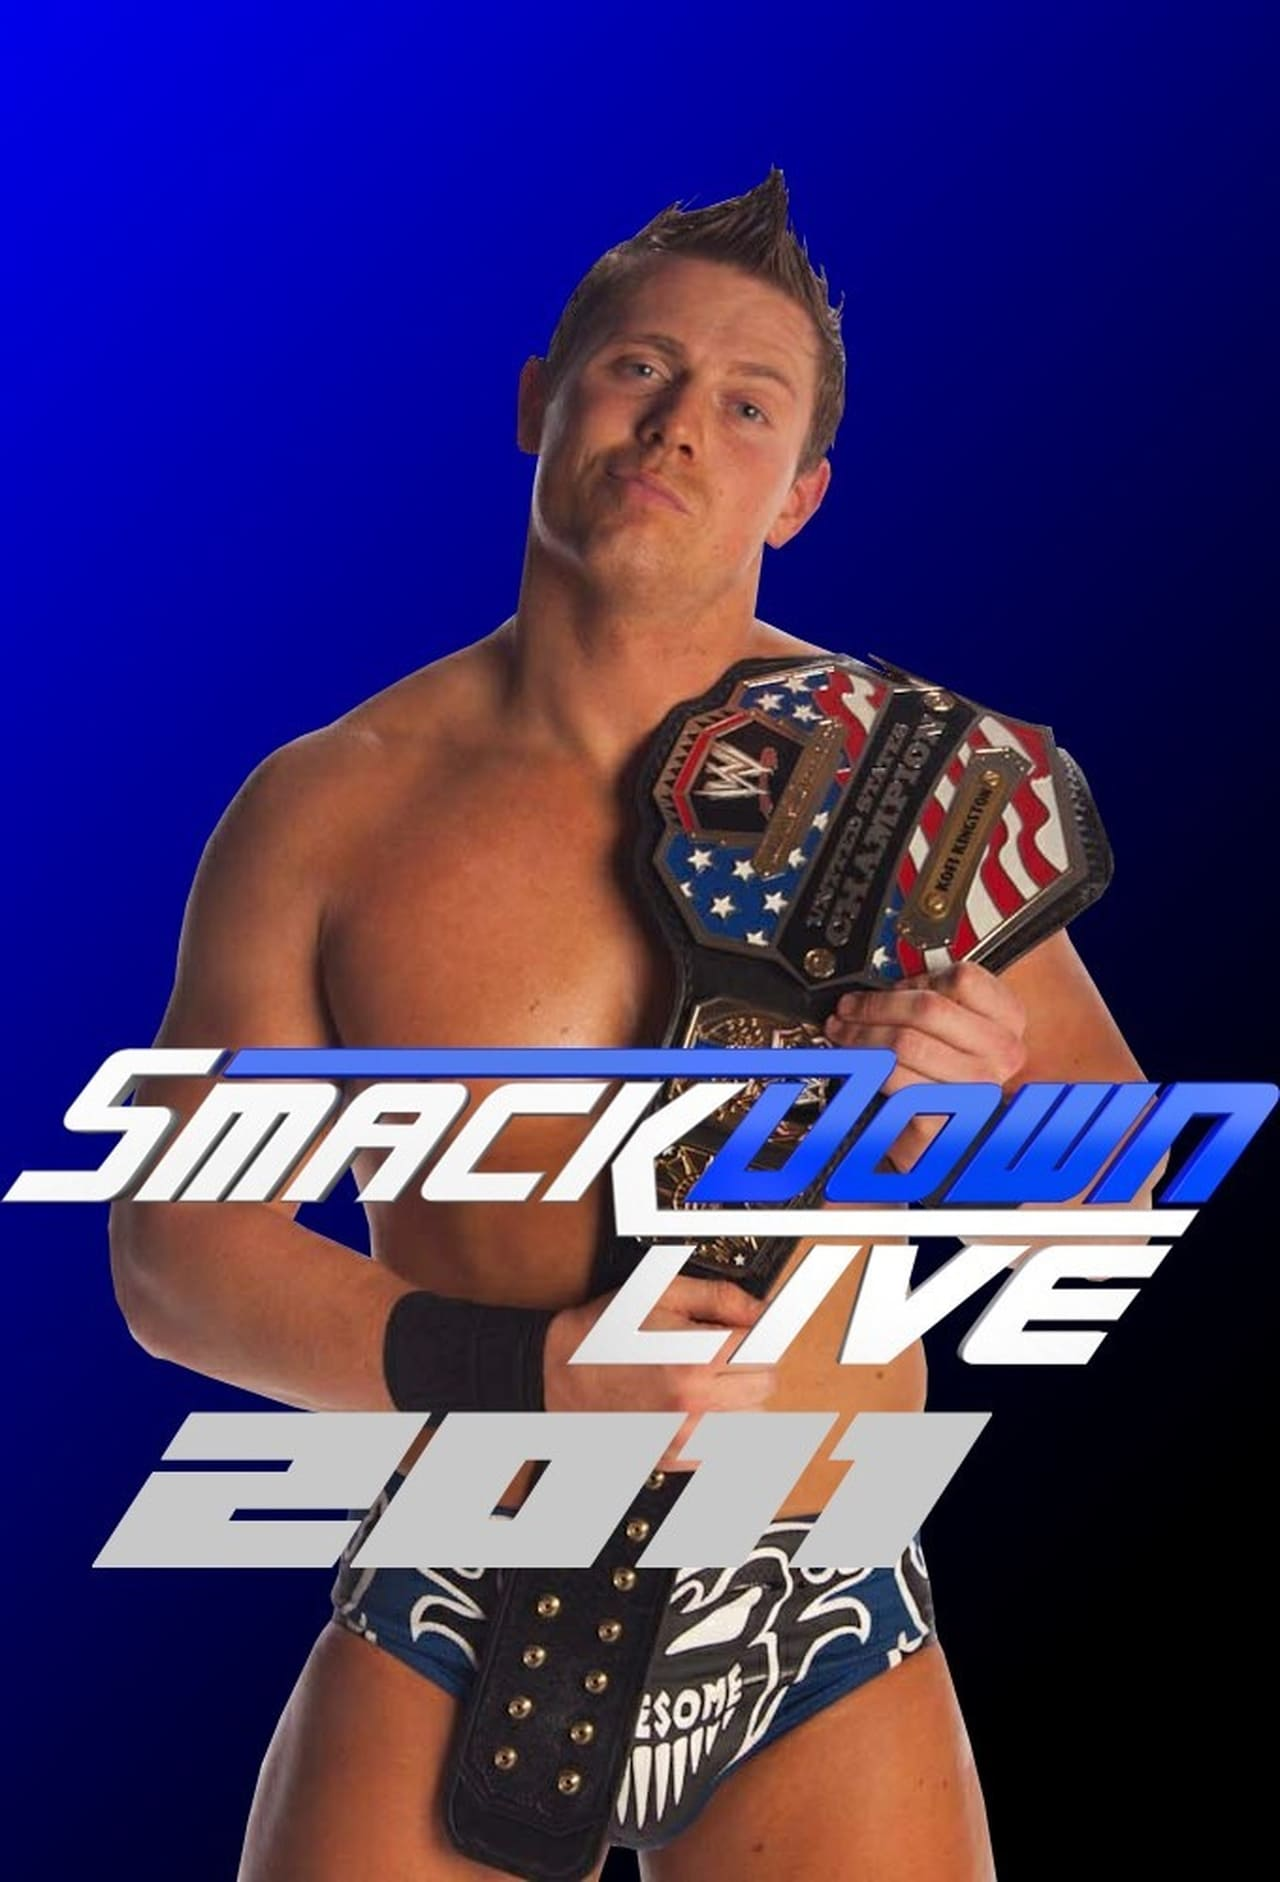 Putlocker Wwe Smackdown Live Season 13 (2011)